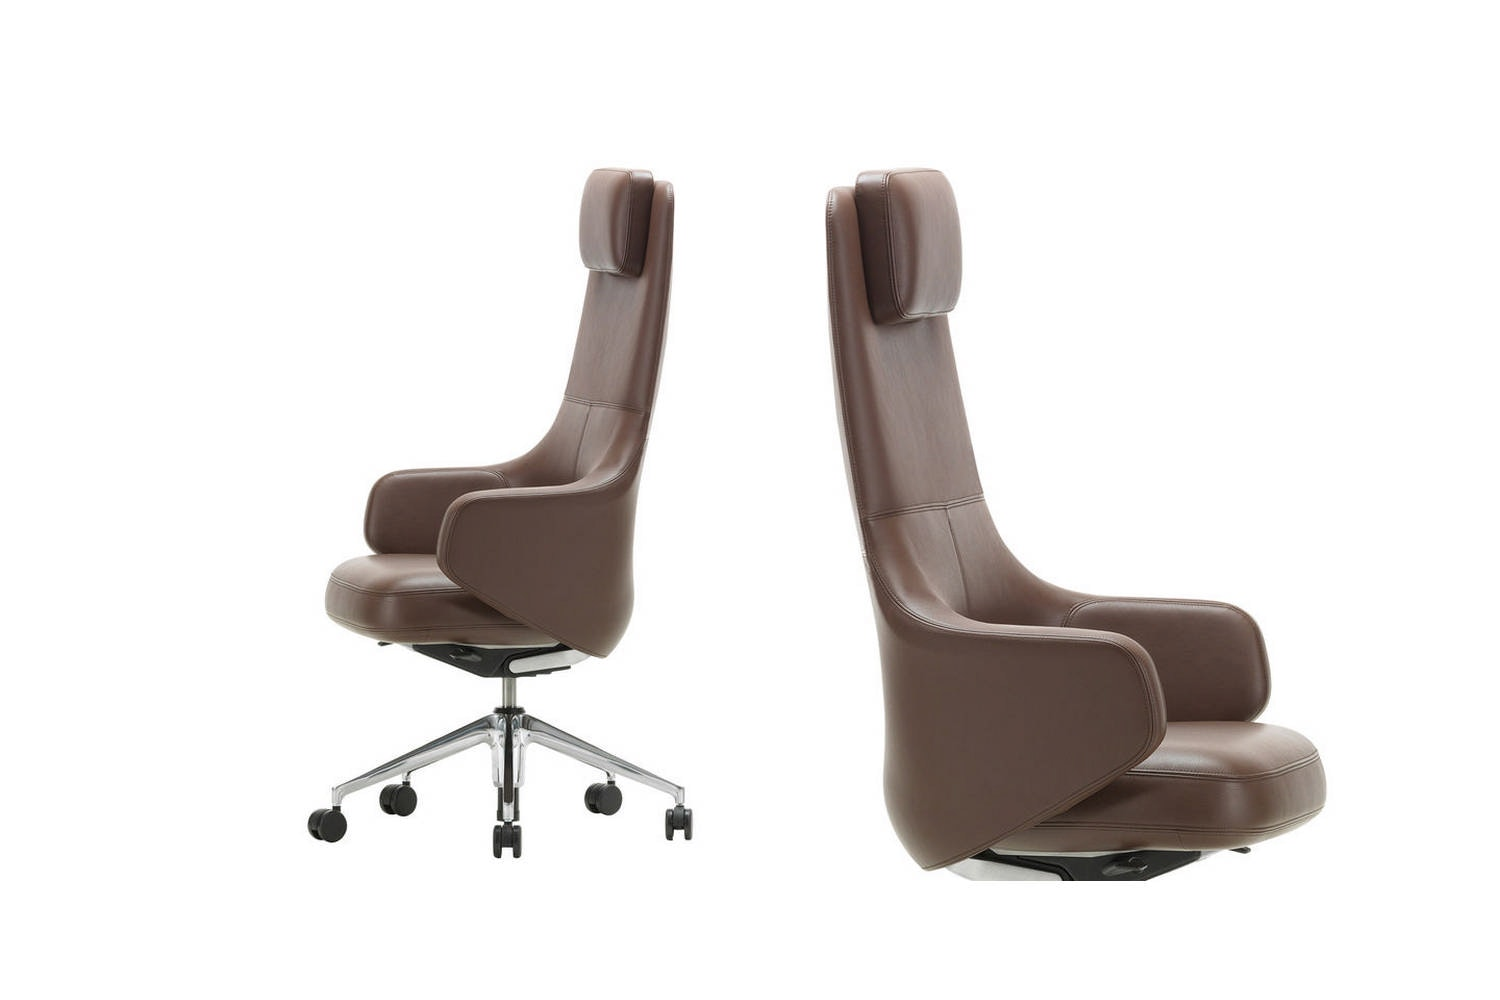 Grand Executive Highback Chair by Antonio Citterio for Vitra